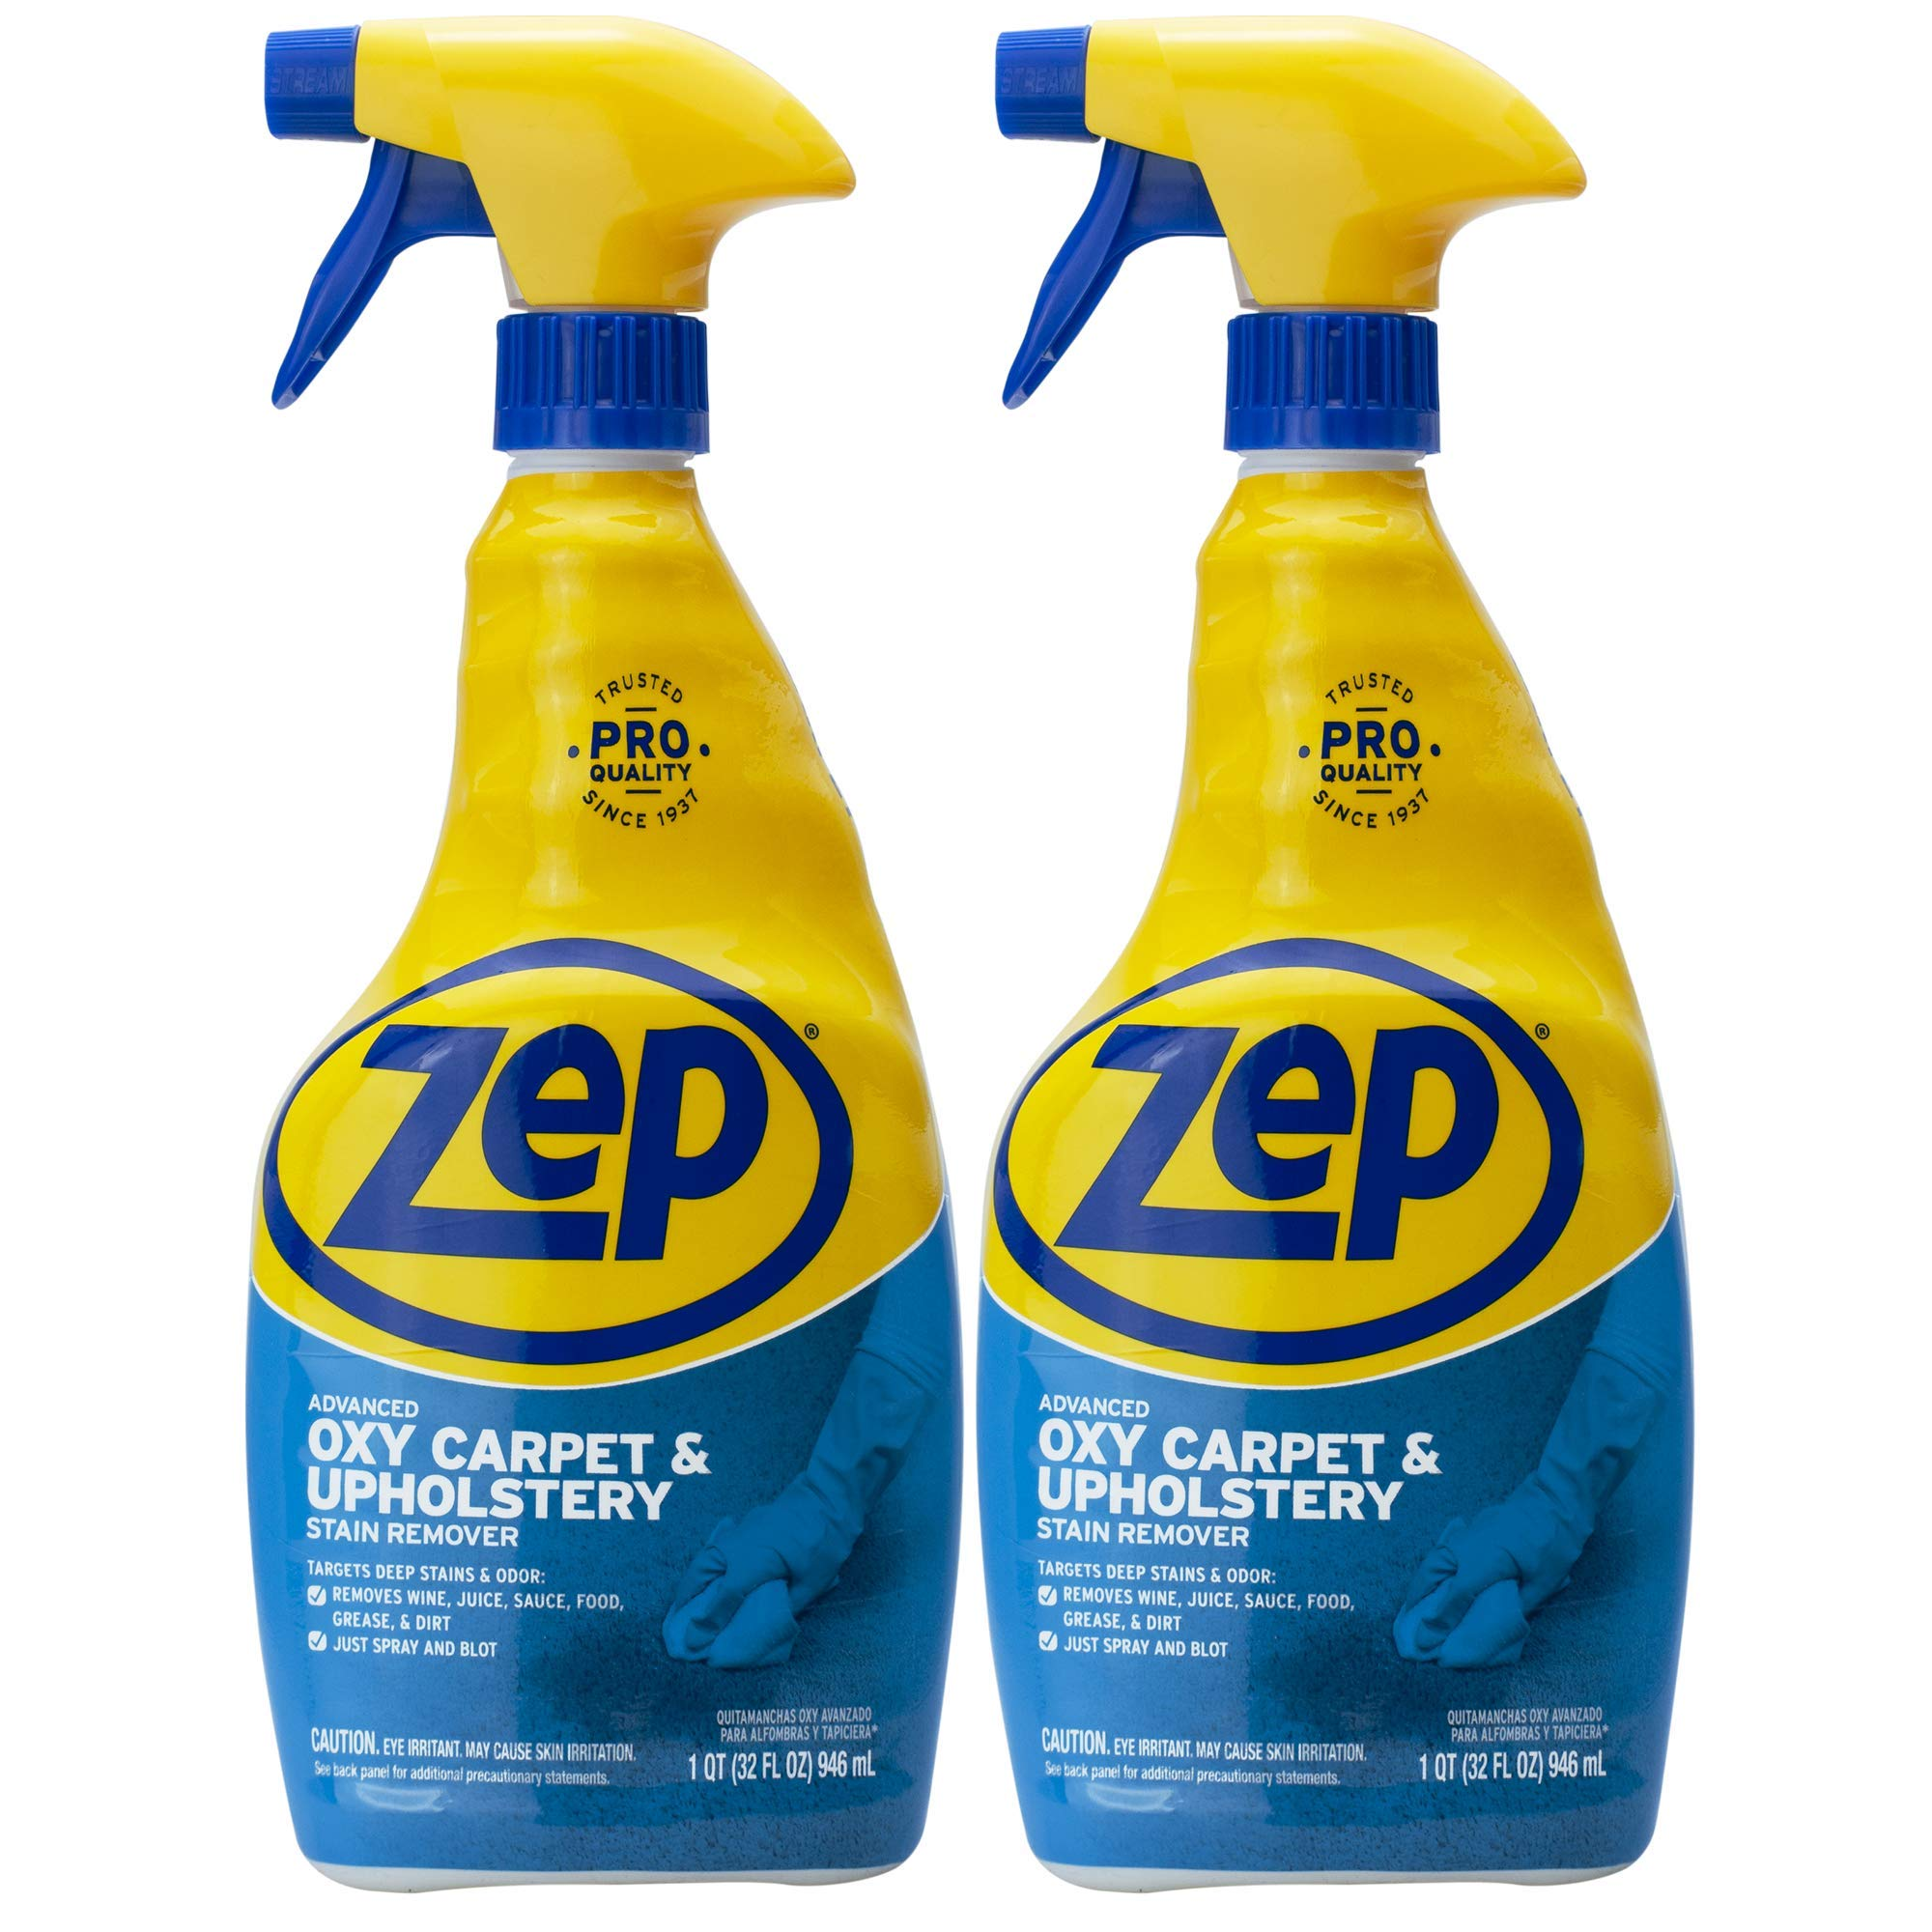 Zep Advanced Oxy Carpet Cleaner 32 ounce ZUOXSR32 (Pack of 2) Great for Upholstery, Carpet, and Clothes